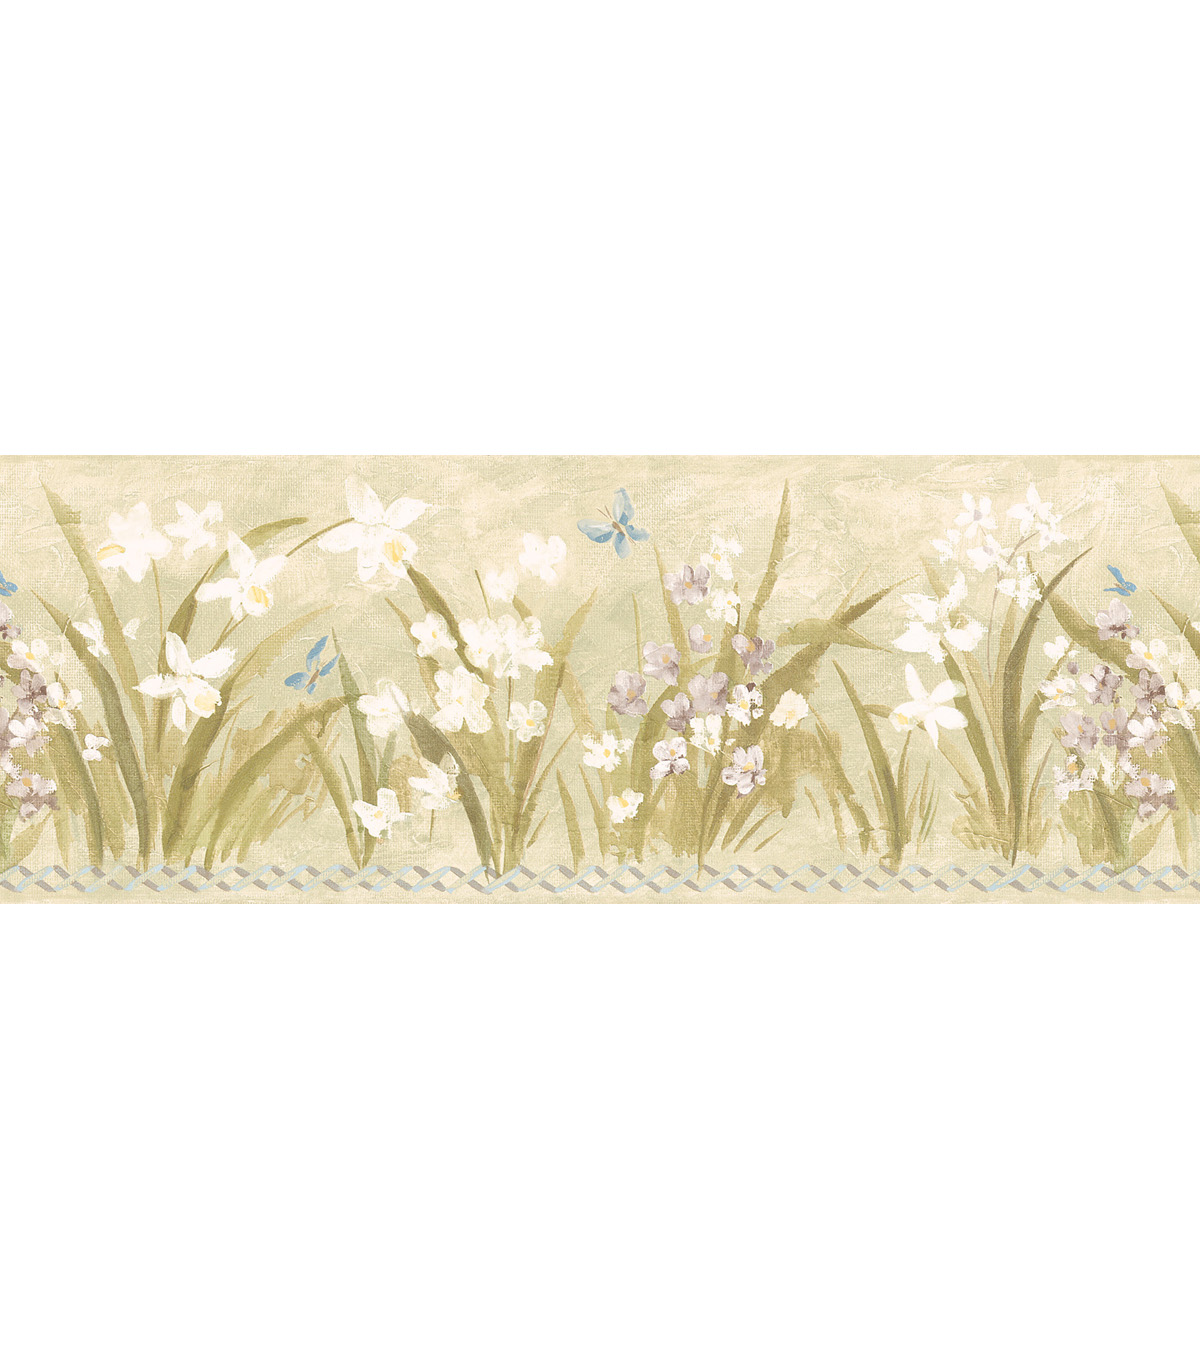 High Grass Floral Motif Wallpaper Border, Green